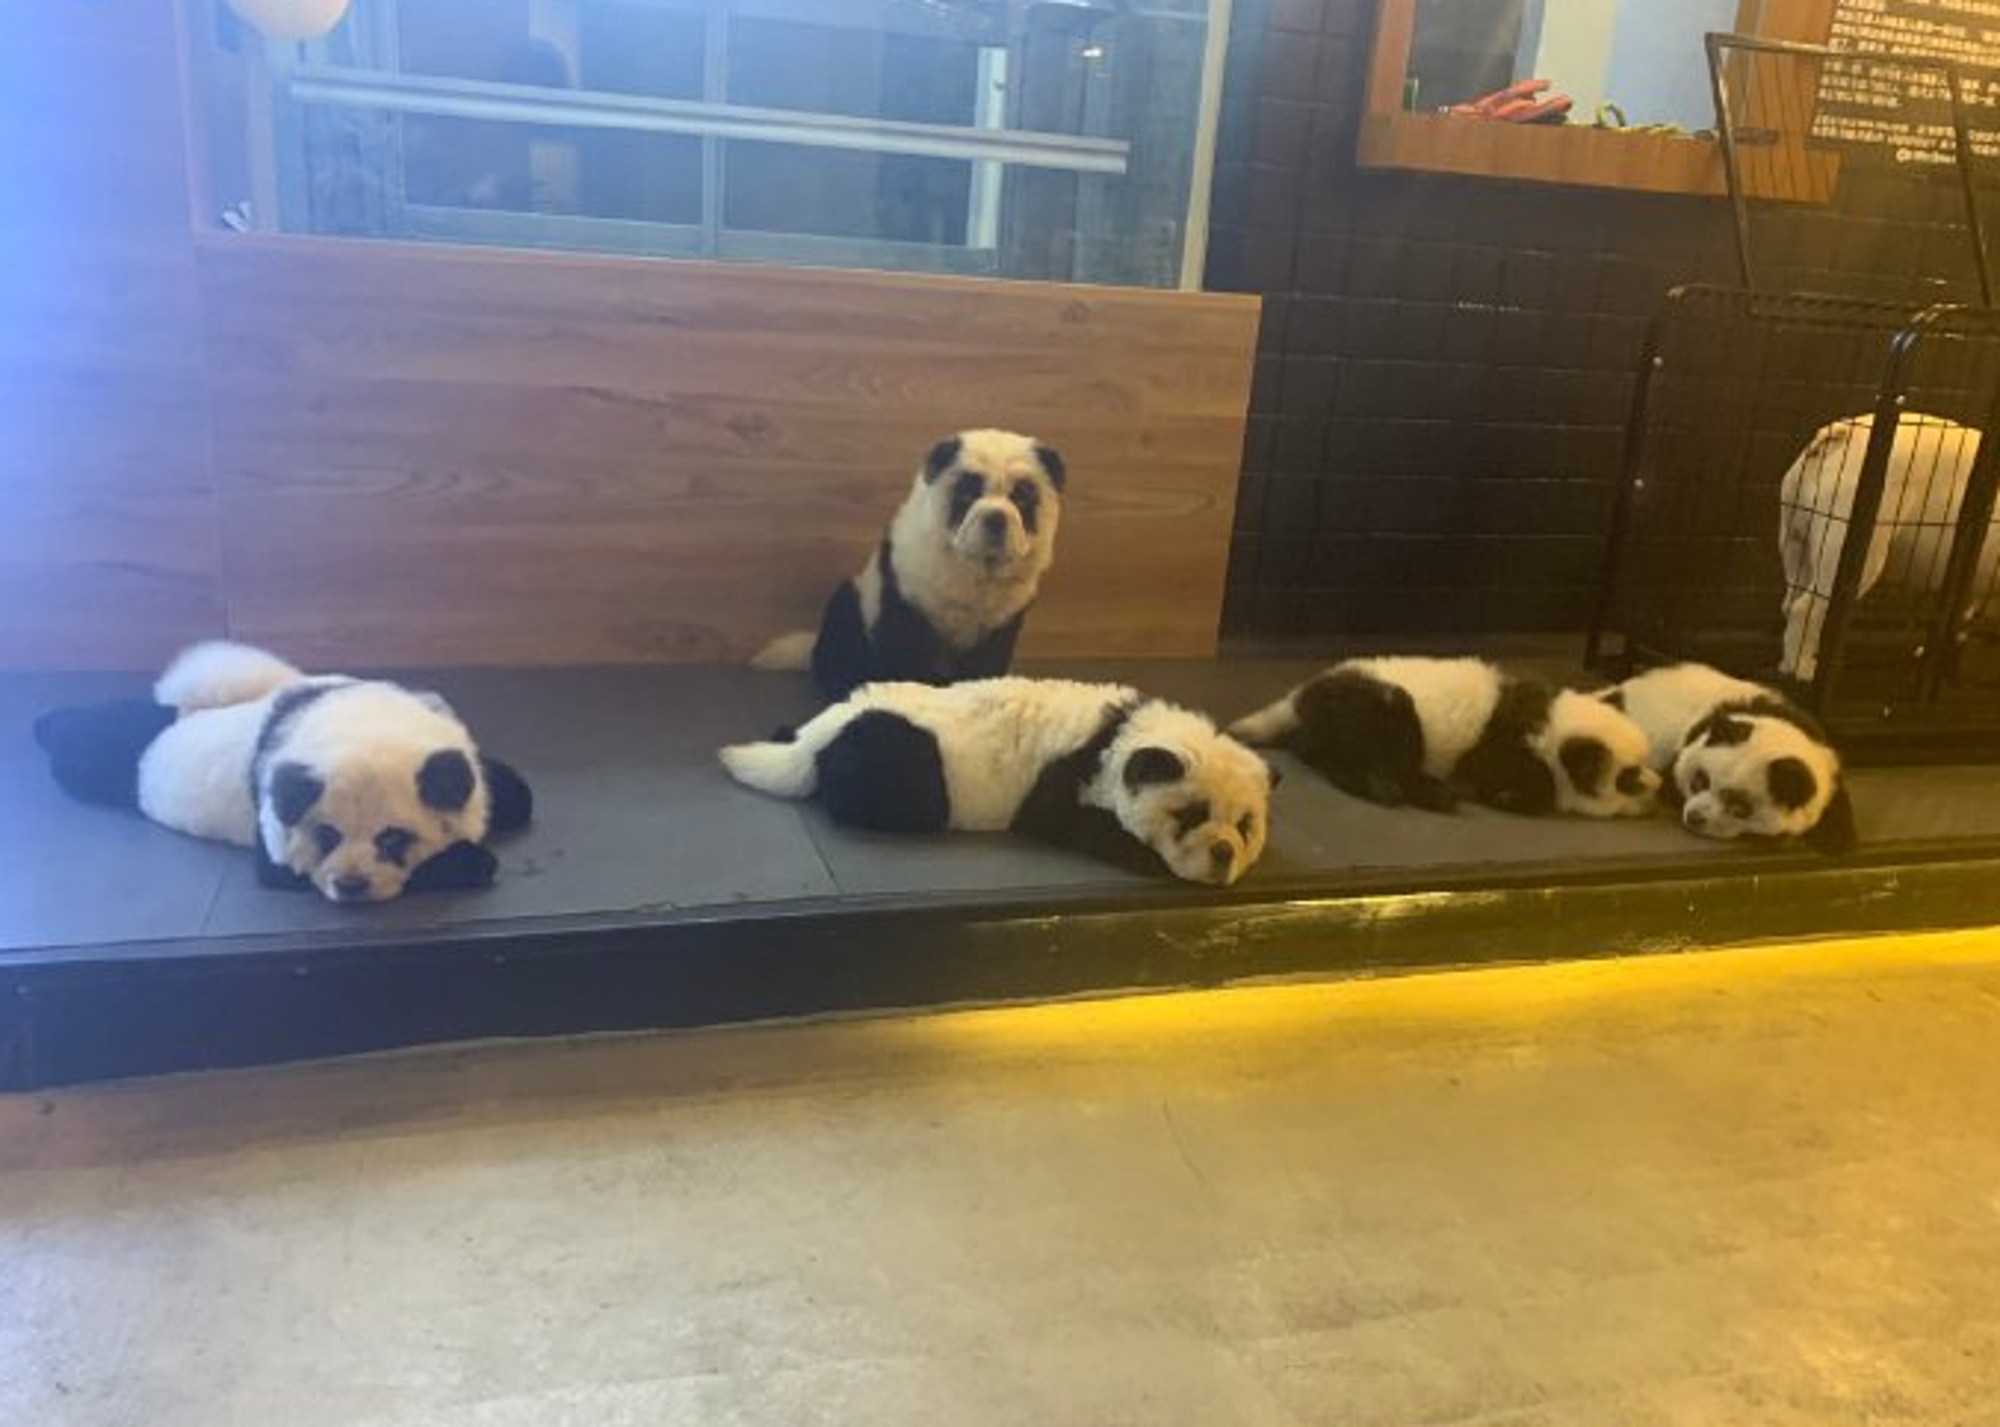 Panda Dogs AsiaWire